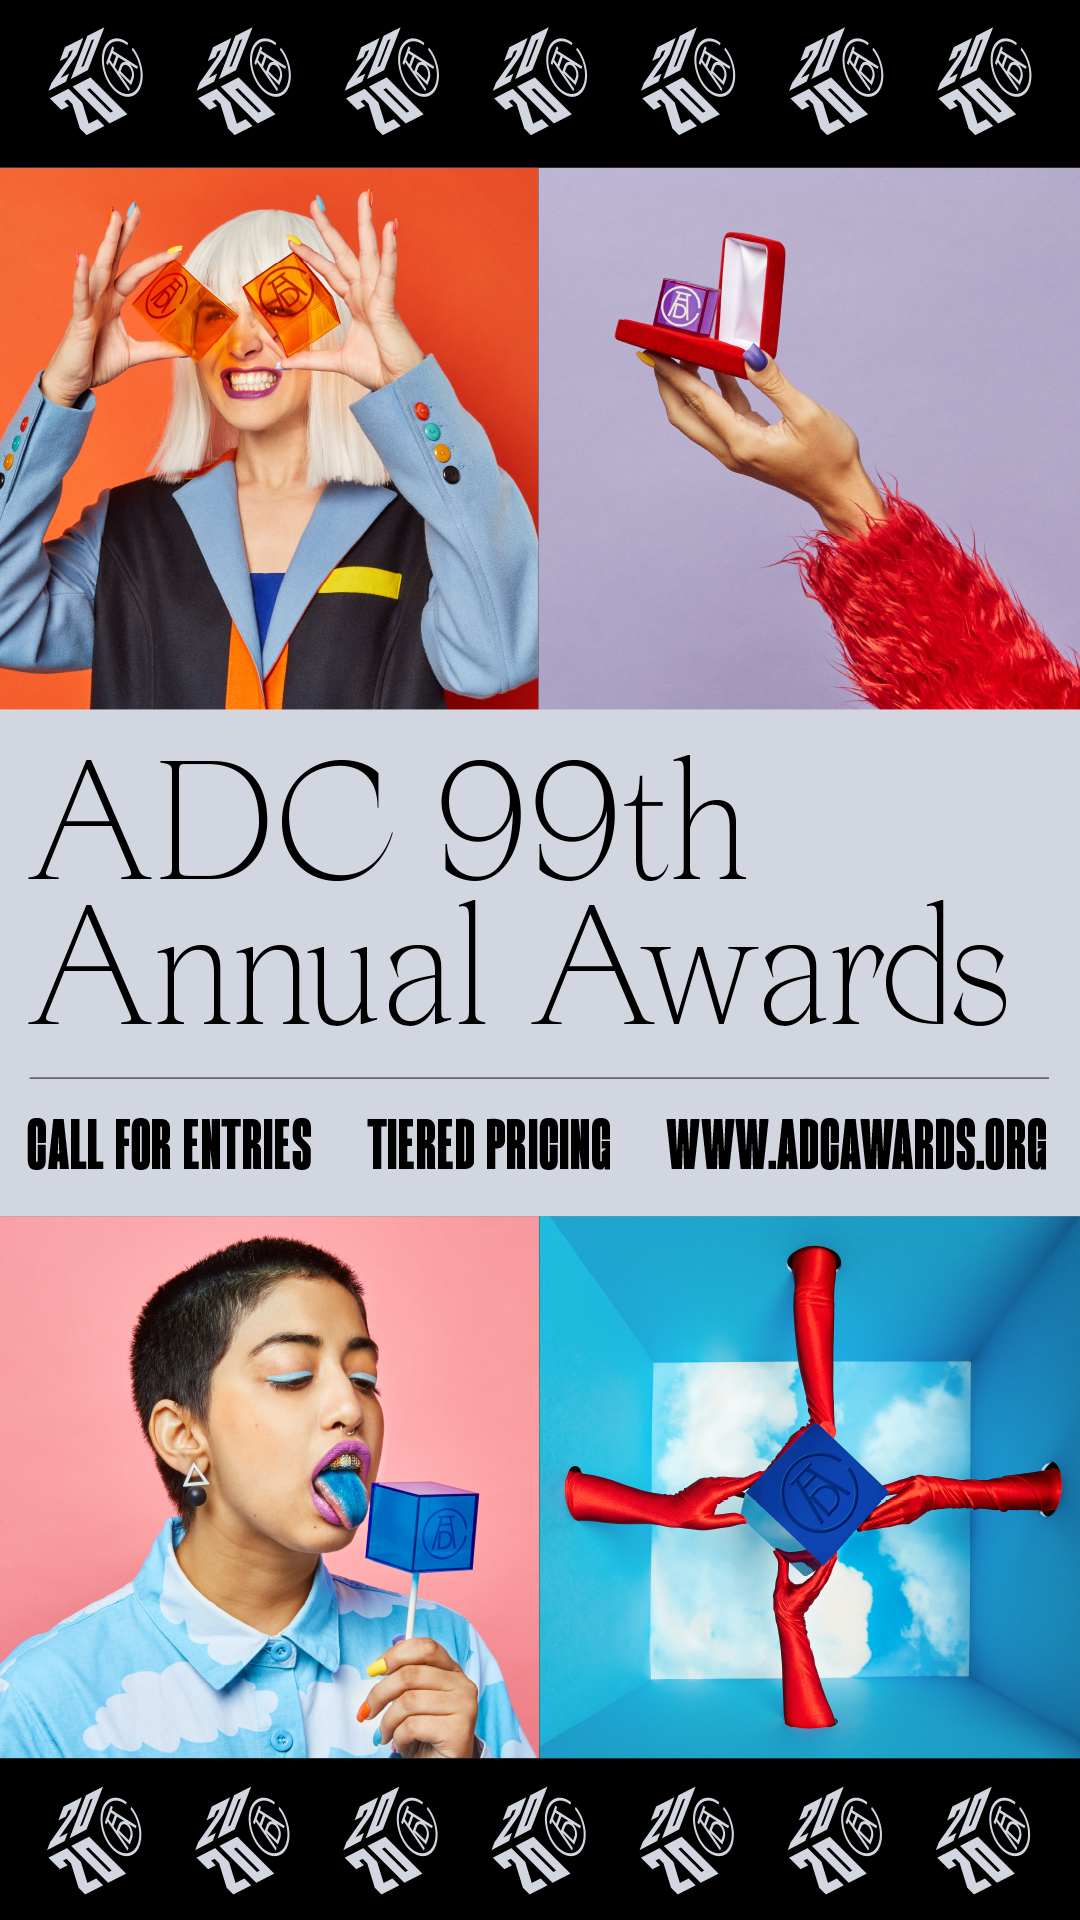 The One Club announces jury chairs for ADC 99th Annual Awards; call for entries now open